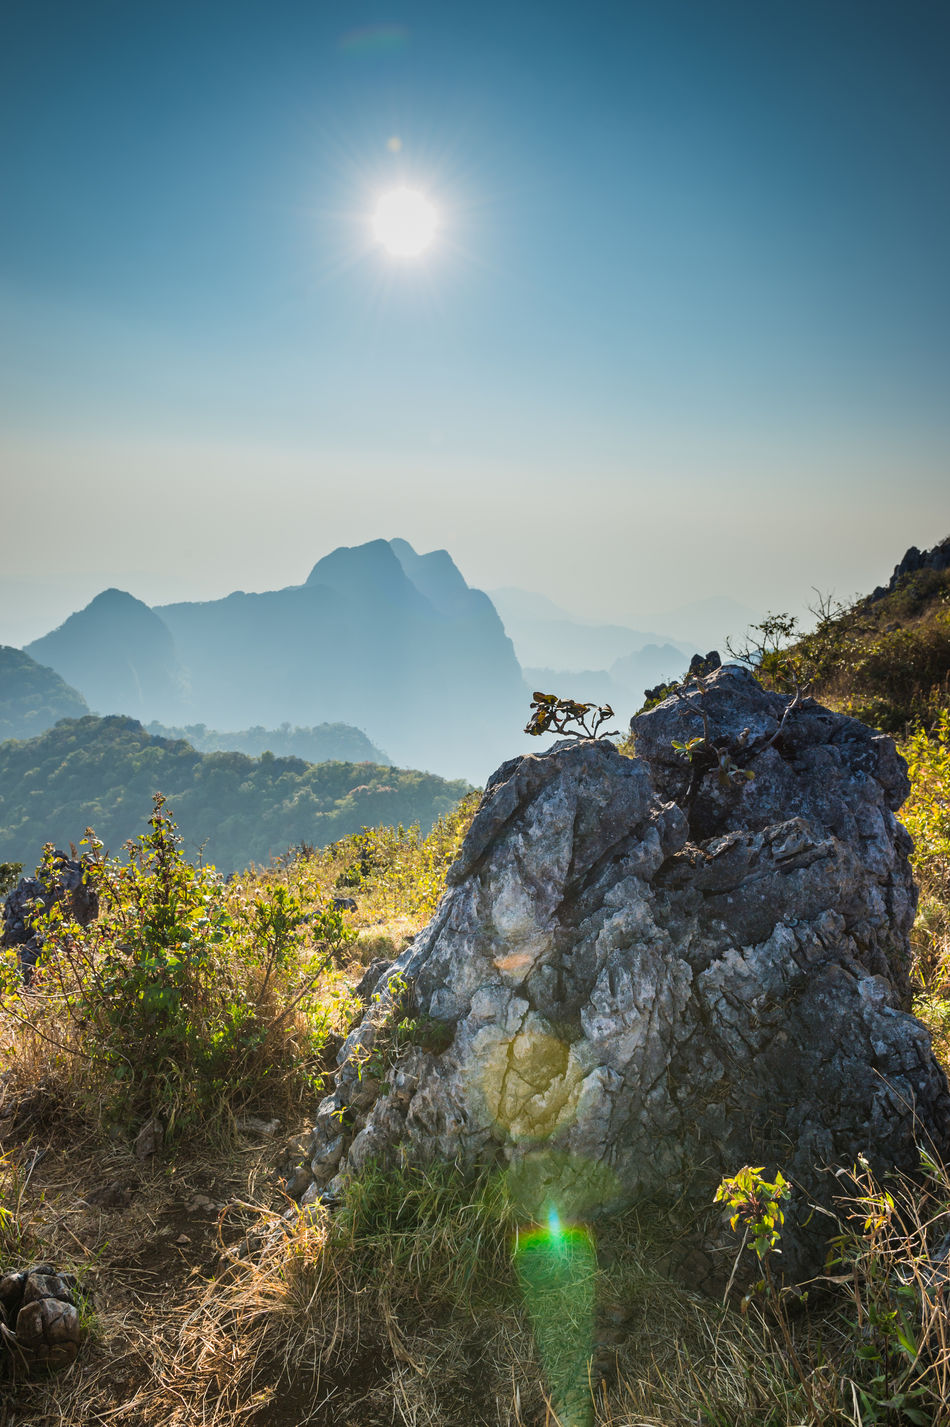 Beauty In Nature Day Doi Luang, Chiang Dao Forest Grass Landscape Lush - Description Mountain Mountain Range Nature No People Outdoors Sky Sun Travel Travel Destinations Tree